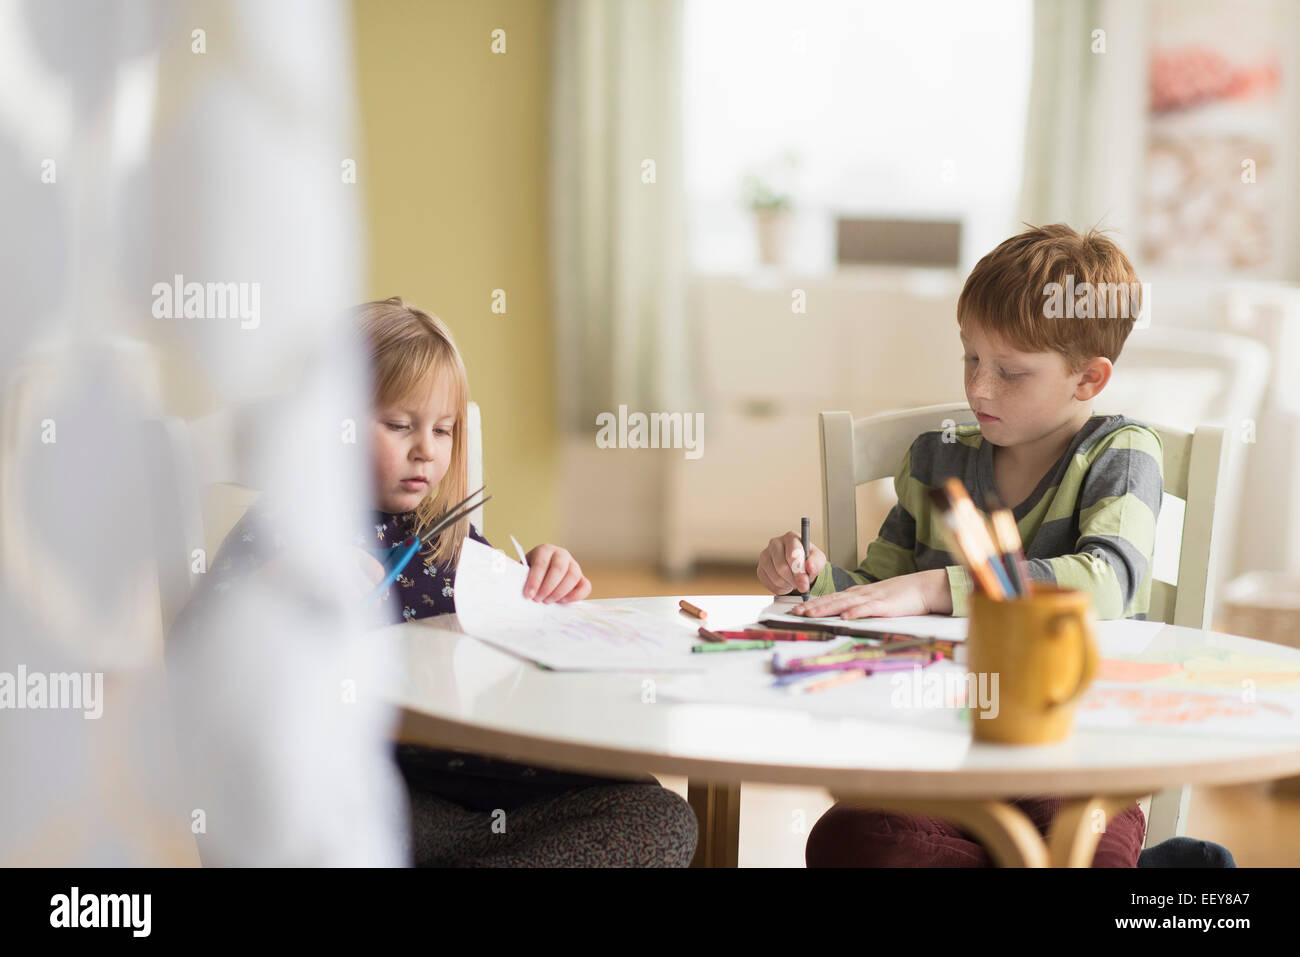 Sister and brother (4-5, 6-7) drawing in family room - Stock Image